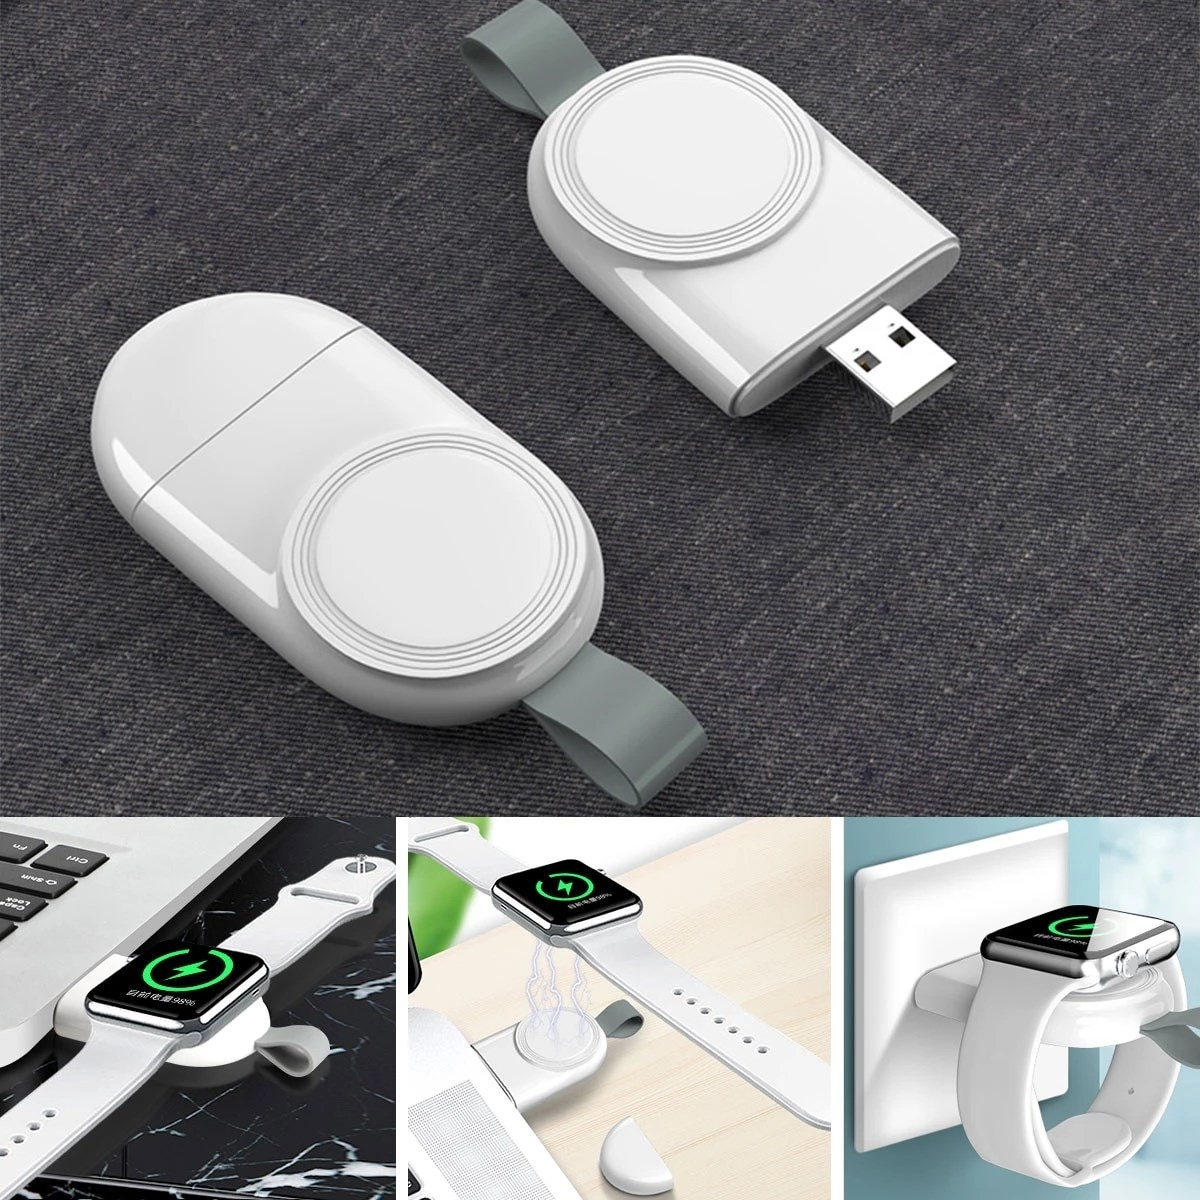 Portable Wireless Charger for IWatch 6 SE 5 4 Charging Dock Station USB Charger Cable for Apple Watc